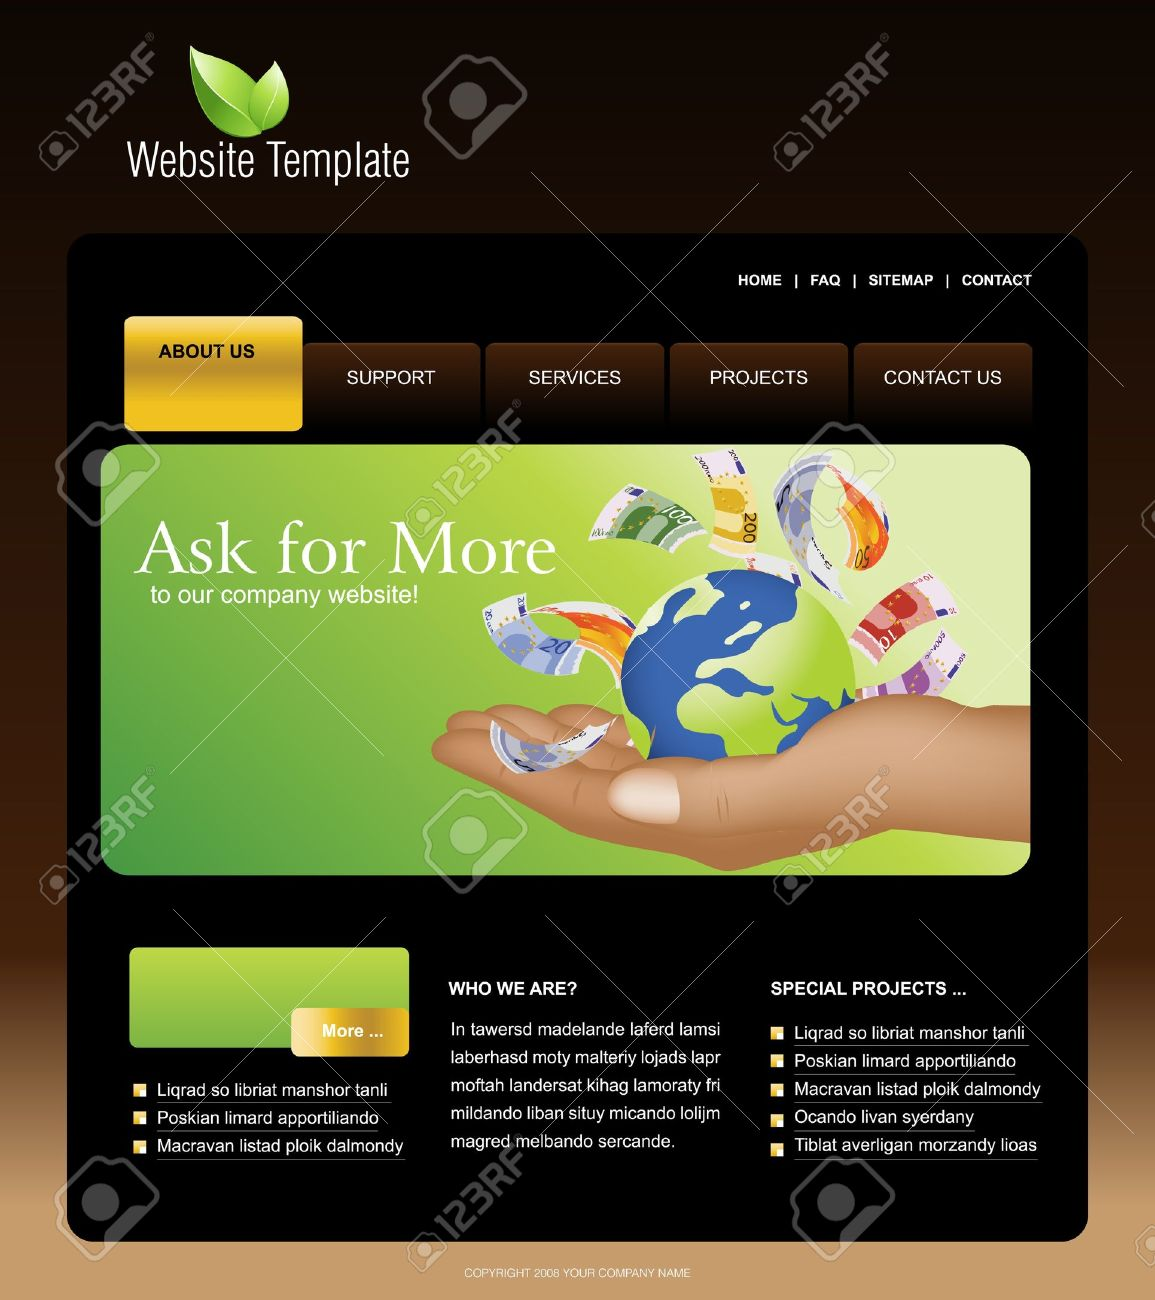 Website Template Royalty Free Cliparts, Vectors, And Stock ...